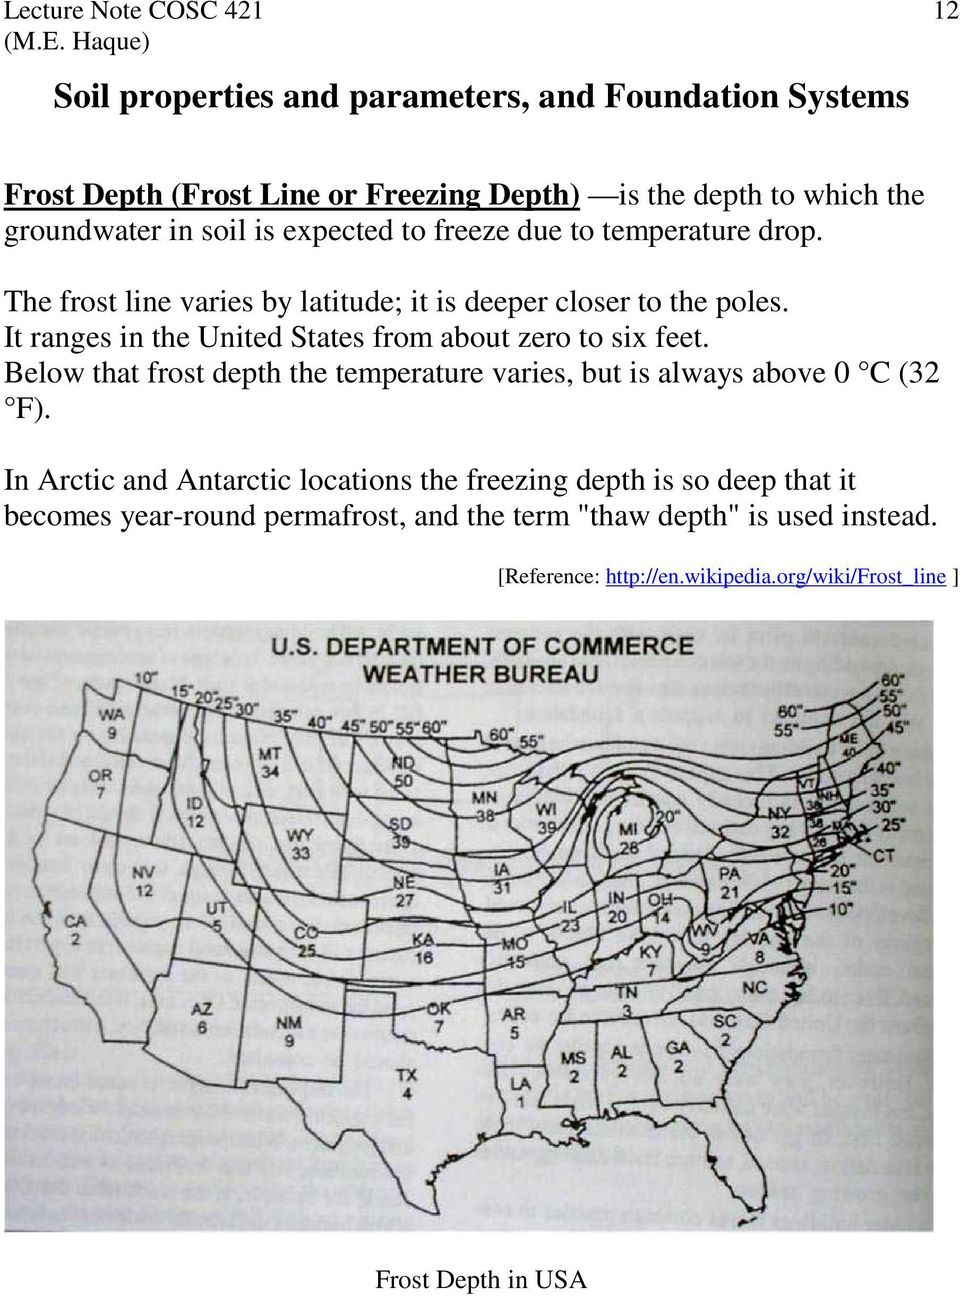 It ranges in the United States from about zero to six feet. Below that frost depth the temperature varies, but is always above 0 C (32 F).